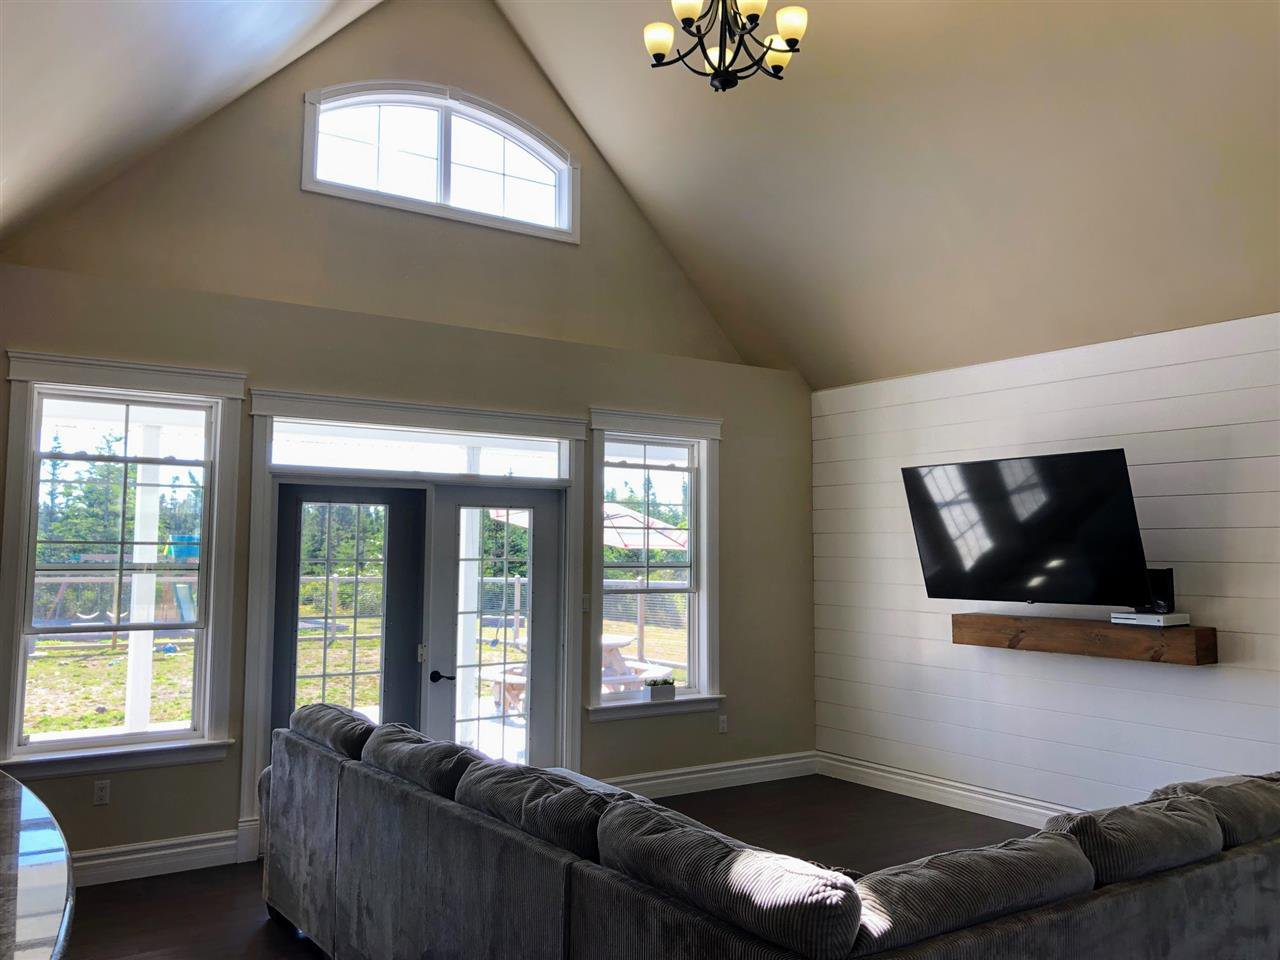 Photo 10: Photos: 1902 Stoney Island Road in Centreville: 407-Shelburne County Residential for sale (South Shore)  : MLS®# 201926888